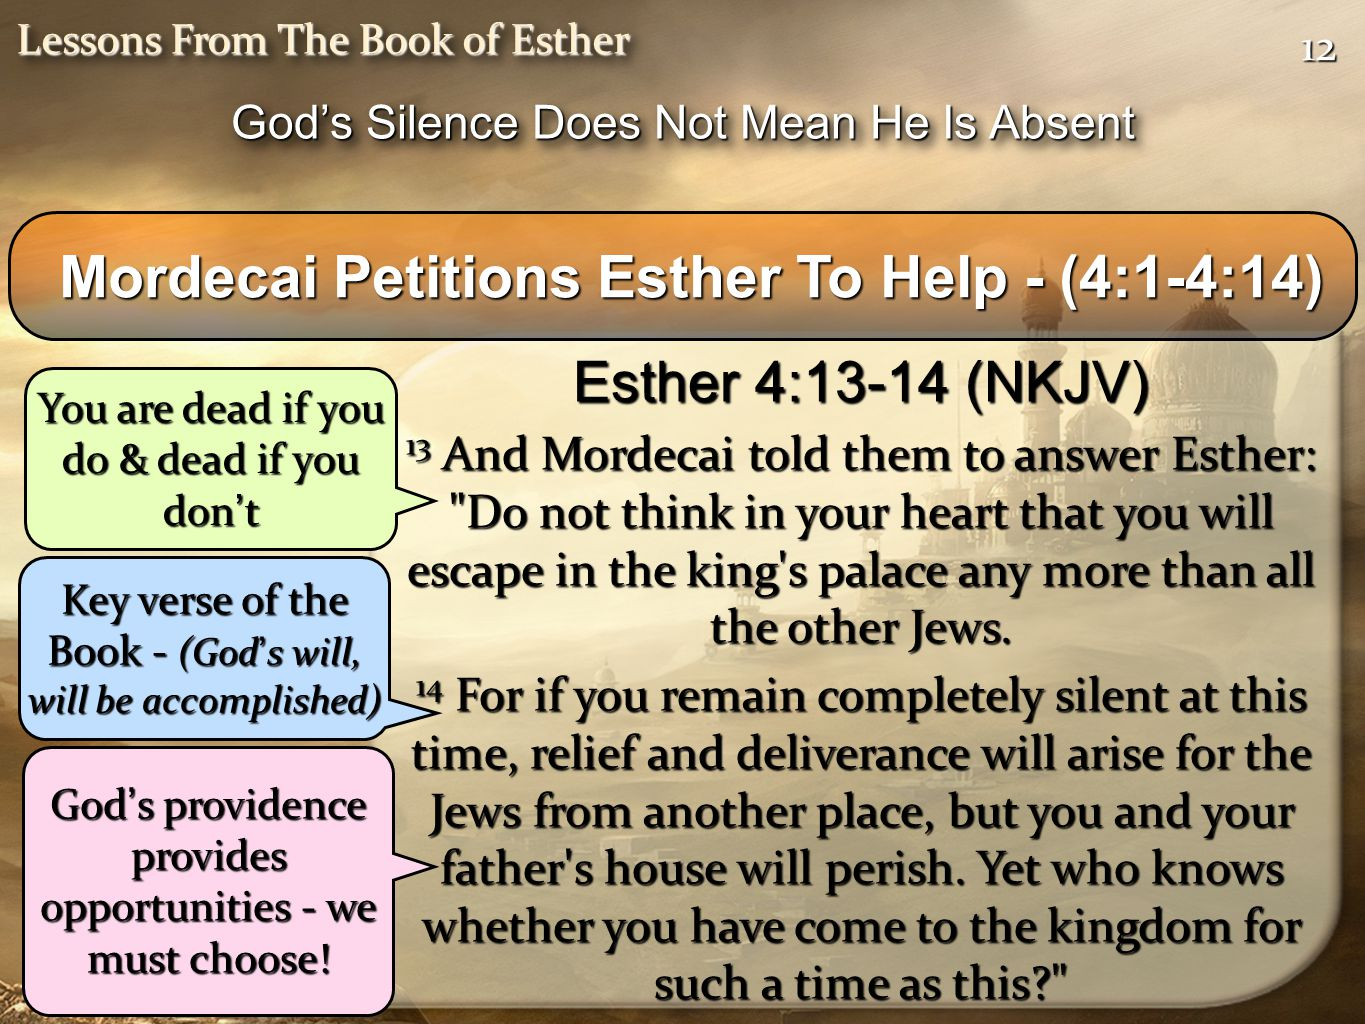 1212 Lessons From The Book of Esther Mordecai Petitions Esther To Help - (4:1-4:14) Mordecai Petitions Esther To Help - (4:1-4:14) Esther 4:13-14 (NKJV) 13 And Mordecai told them to answer Esther: Do not think in your heart that you will escape in the king s palace any more than all the other Jews.